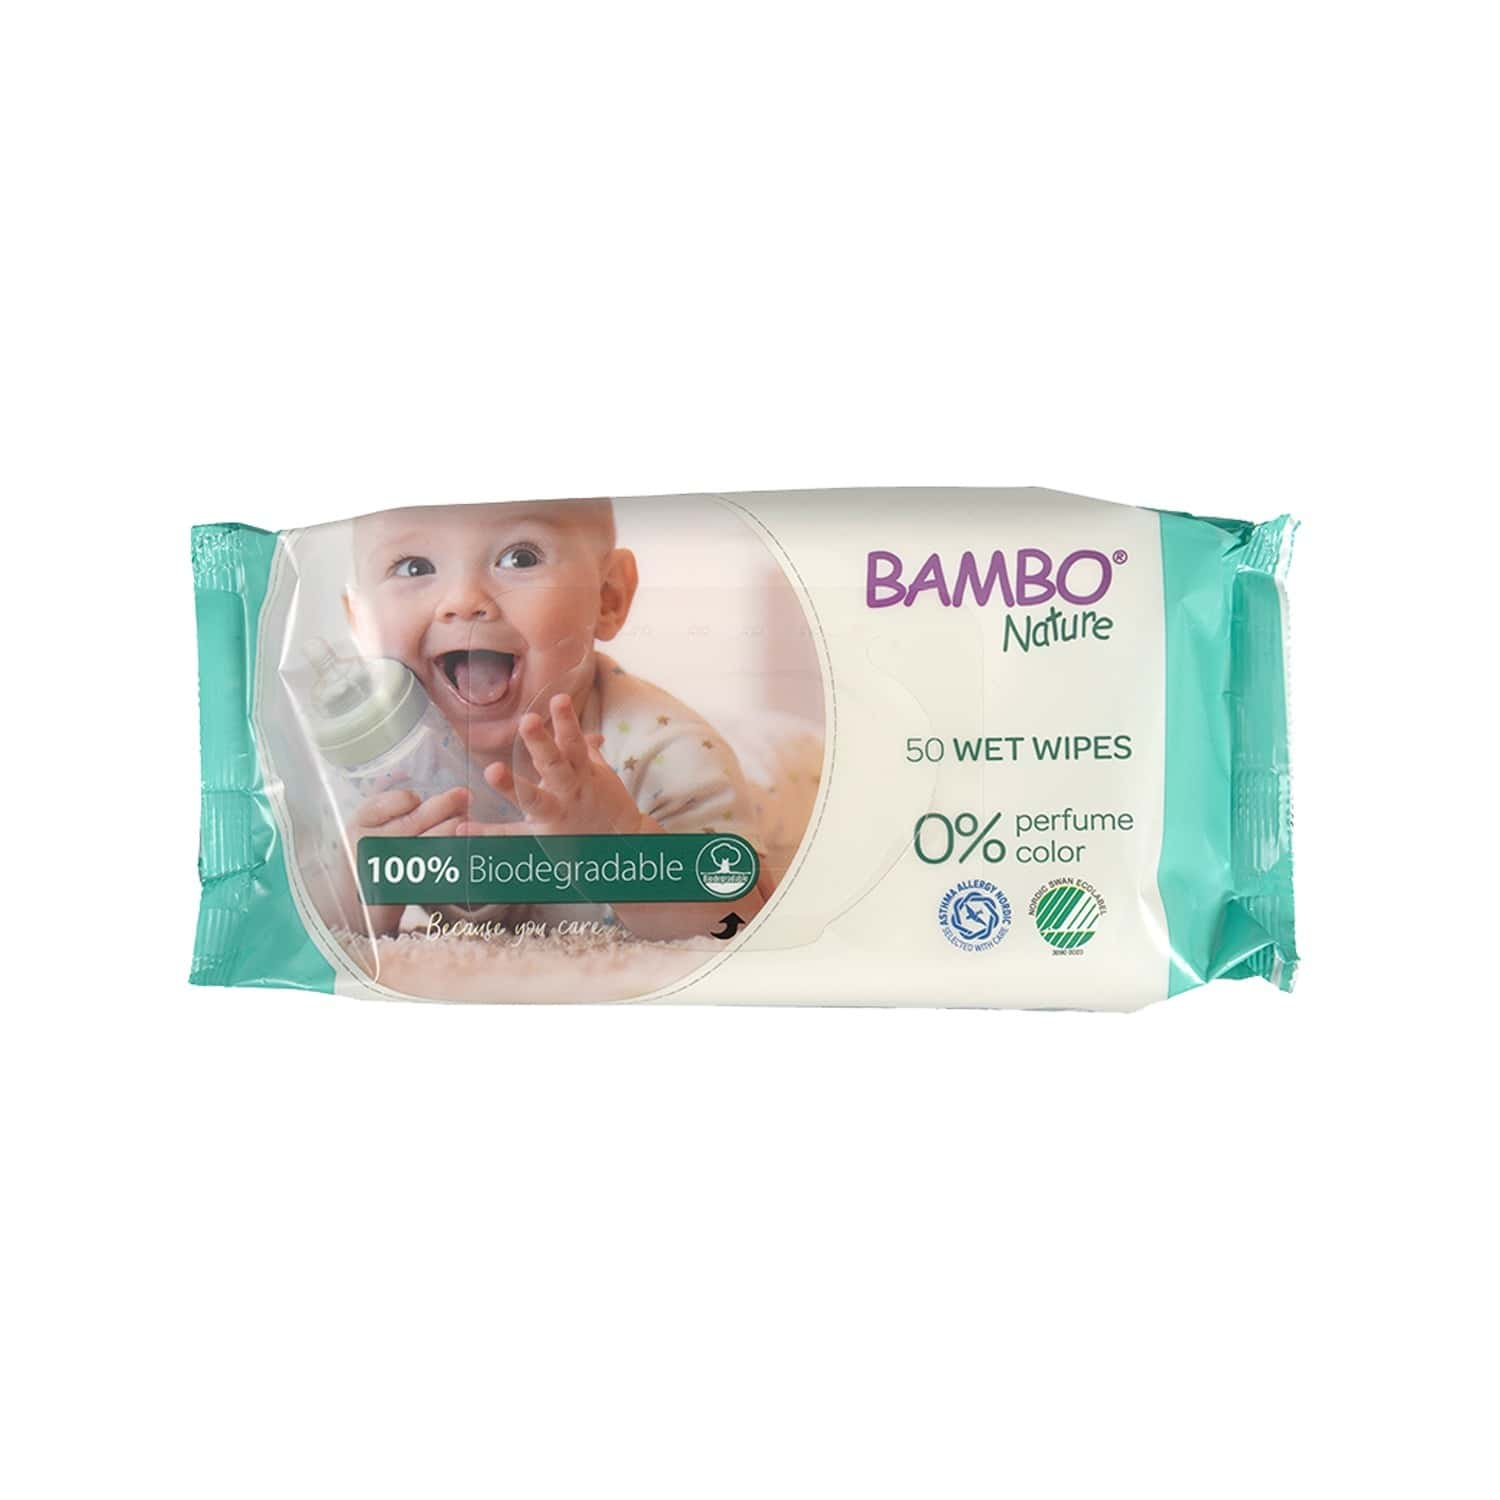 Bambo Nature Biodegradable Wet Wipes - 50 Wipes